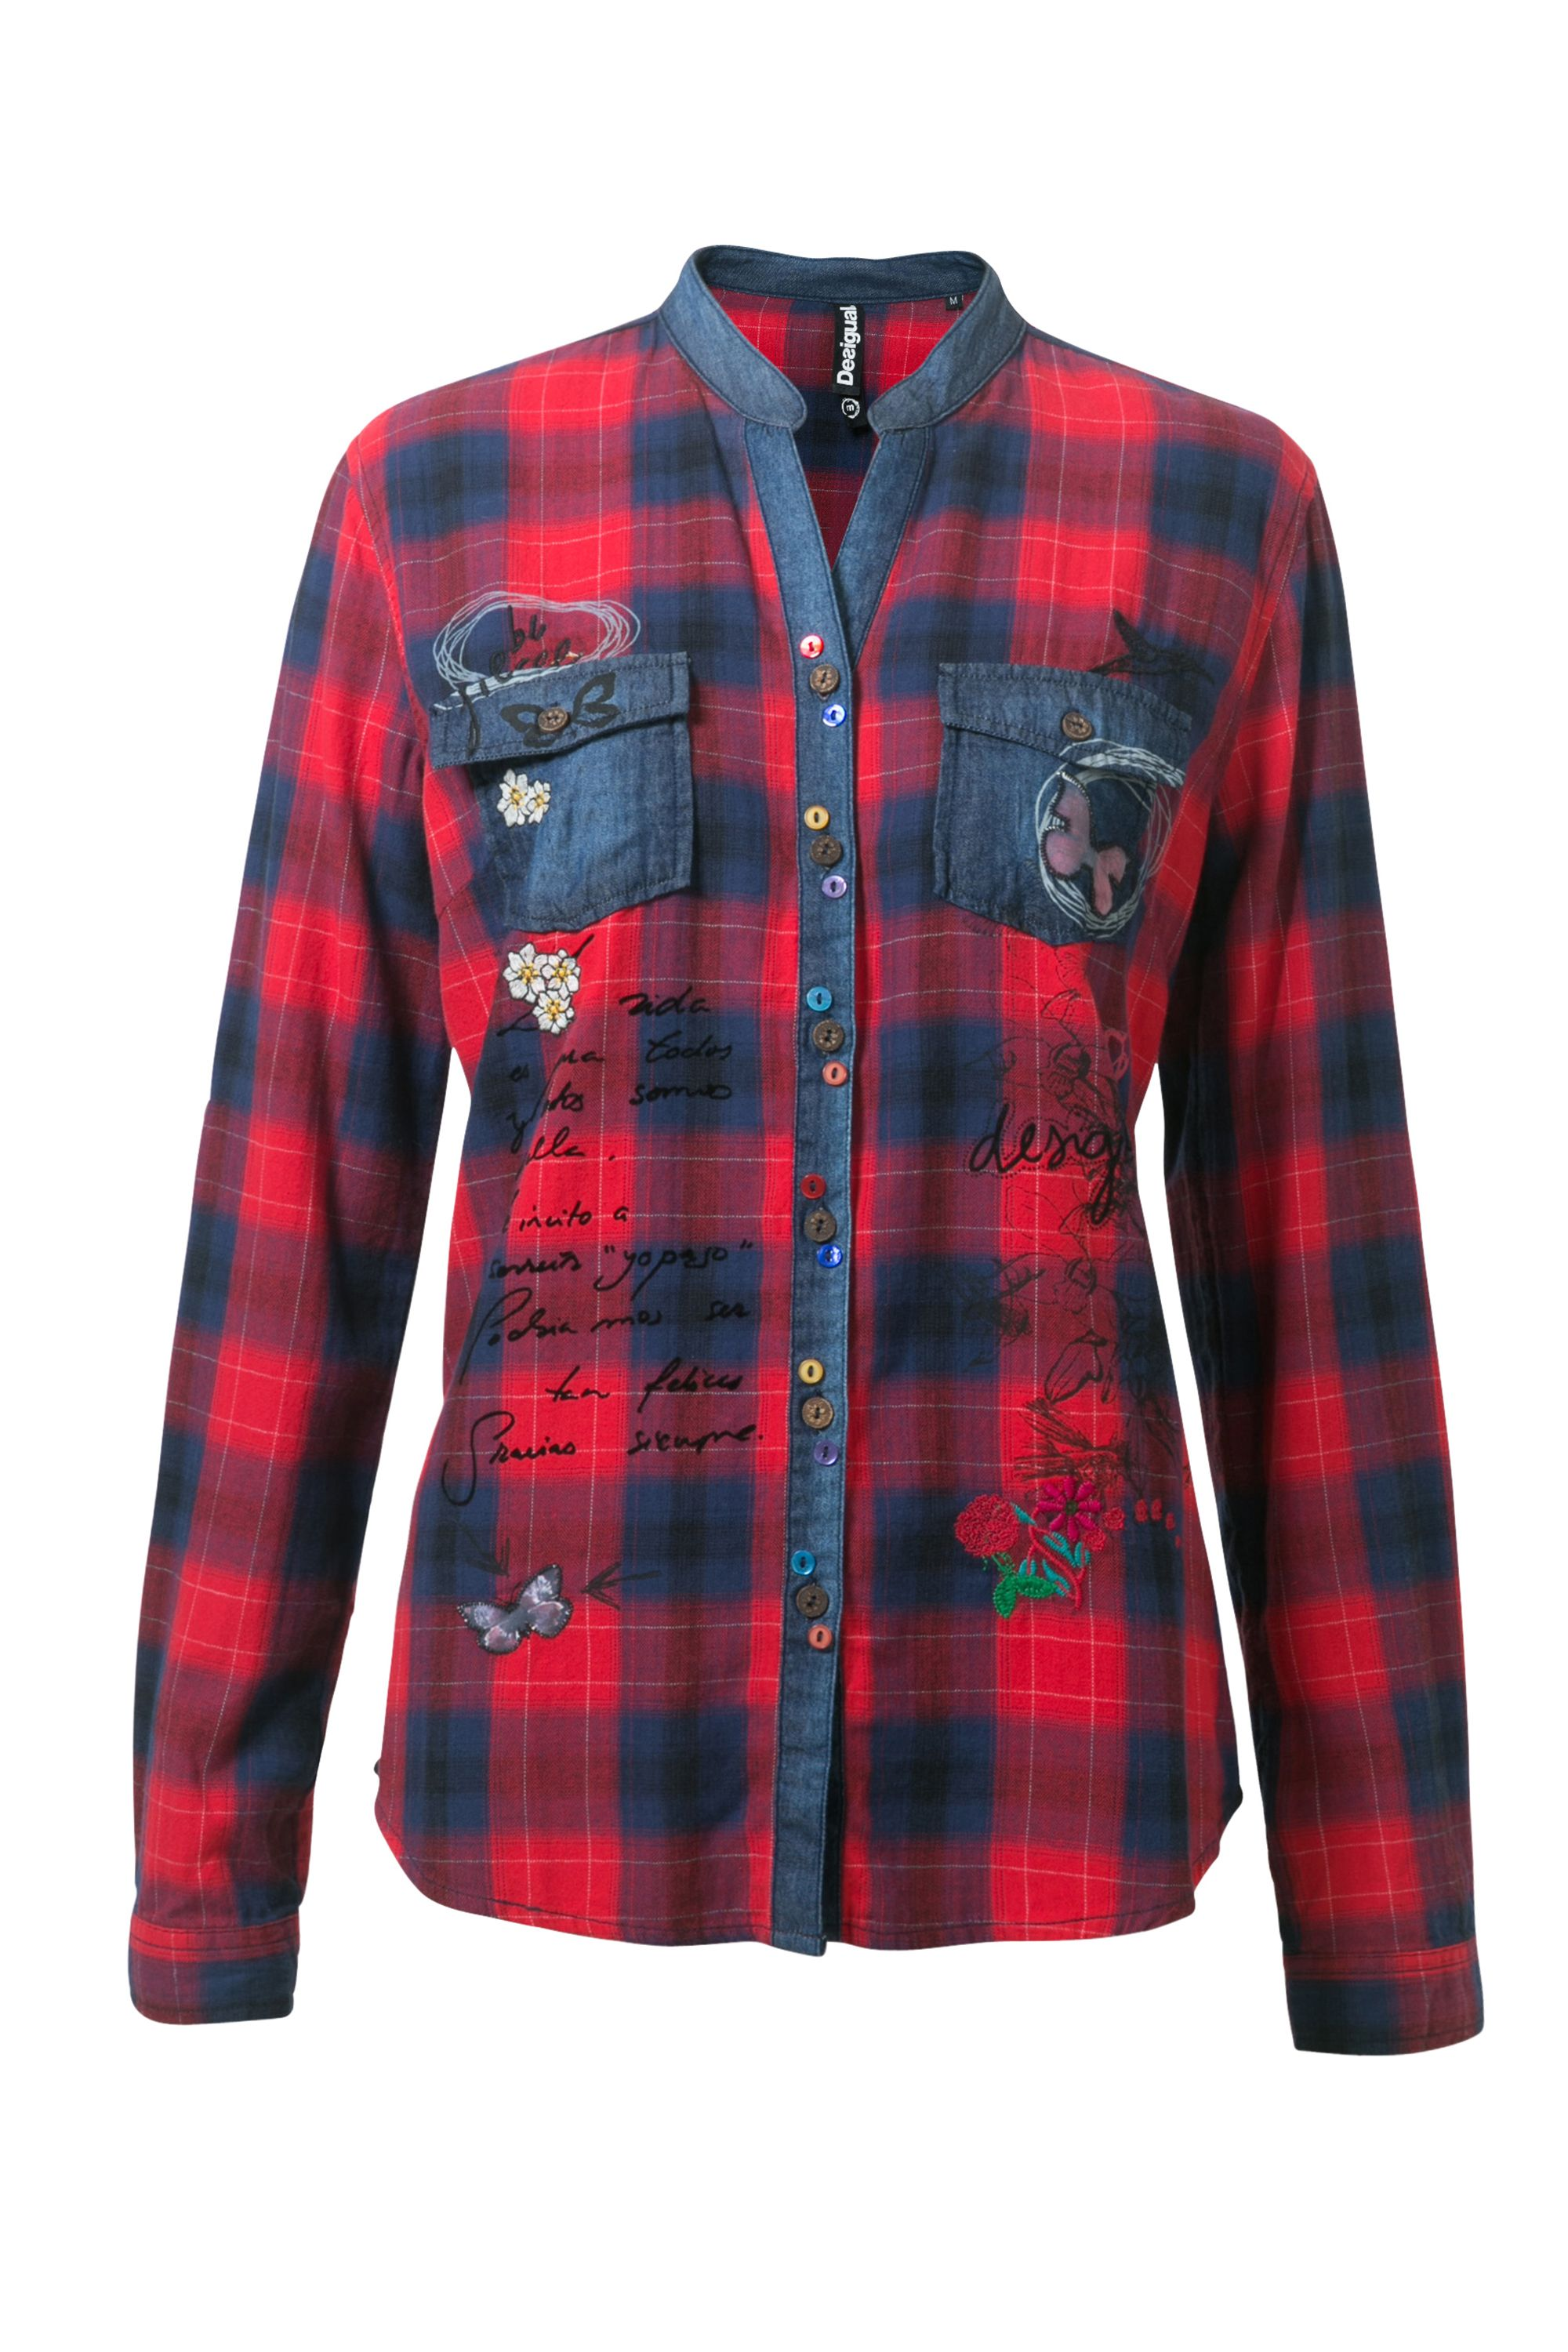 Desigual Shirt Elqui  Rep, Red